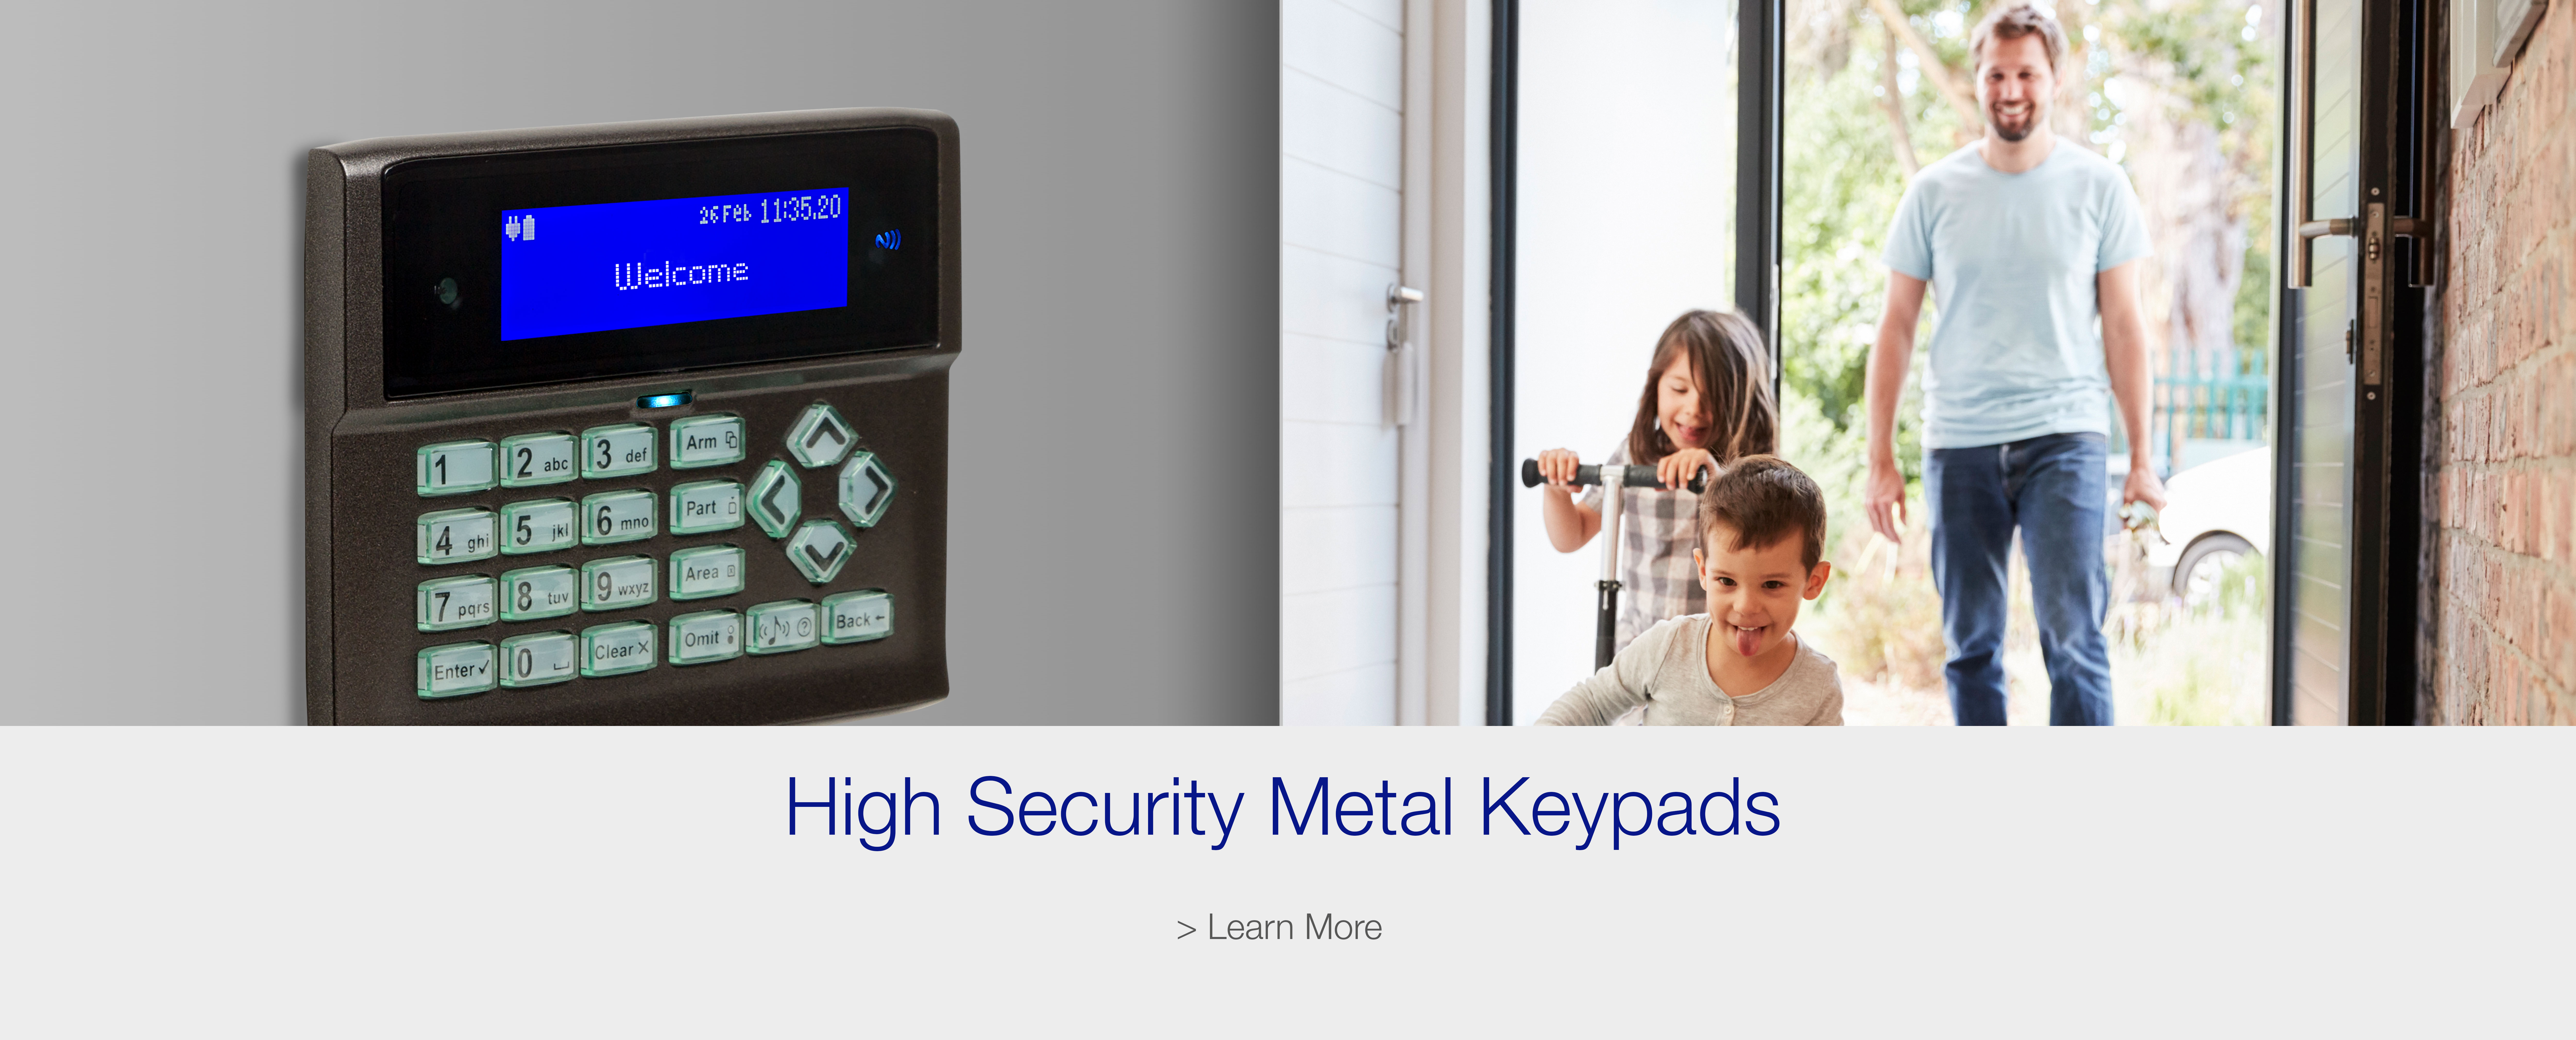 Orisec High Security Metal Keypads with Premium Finishes